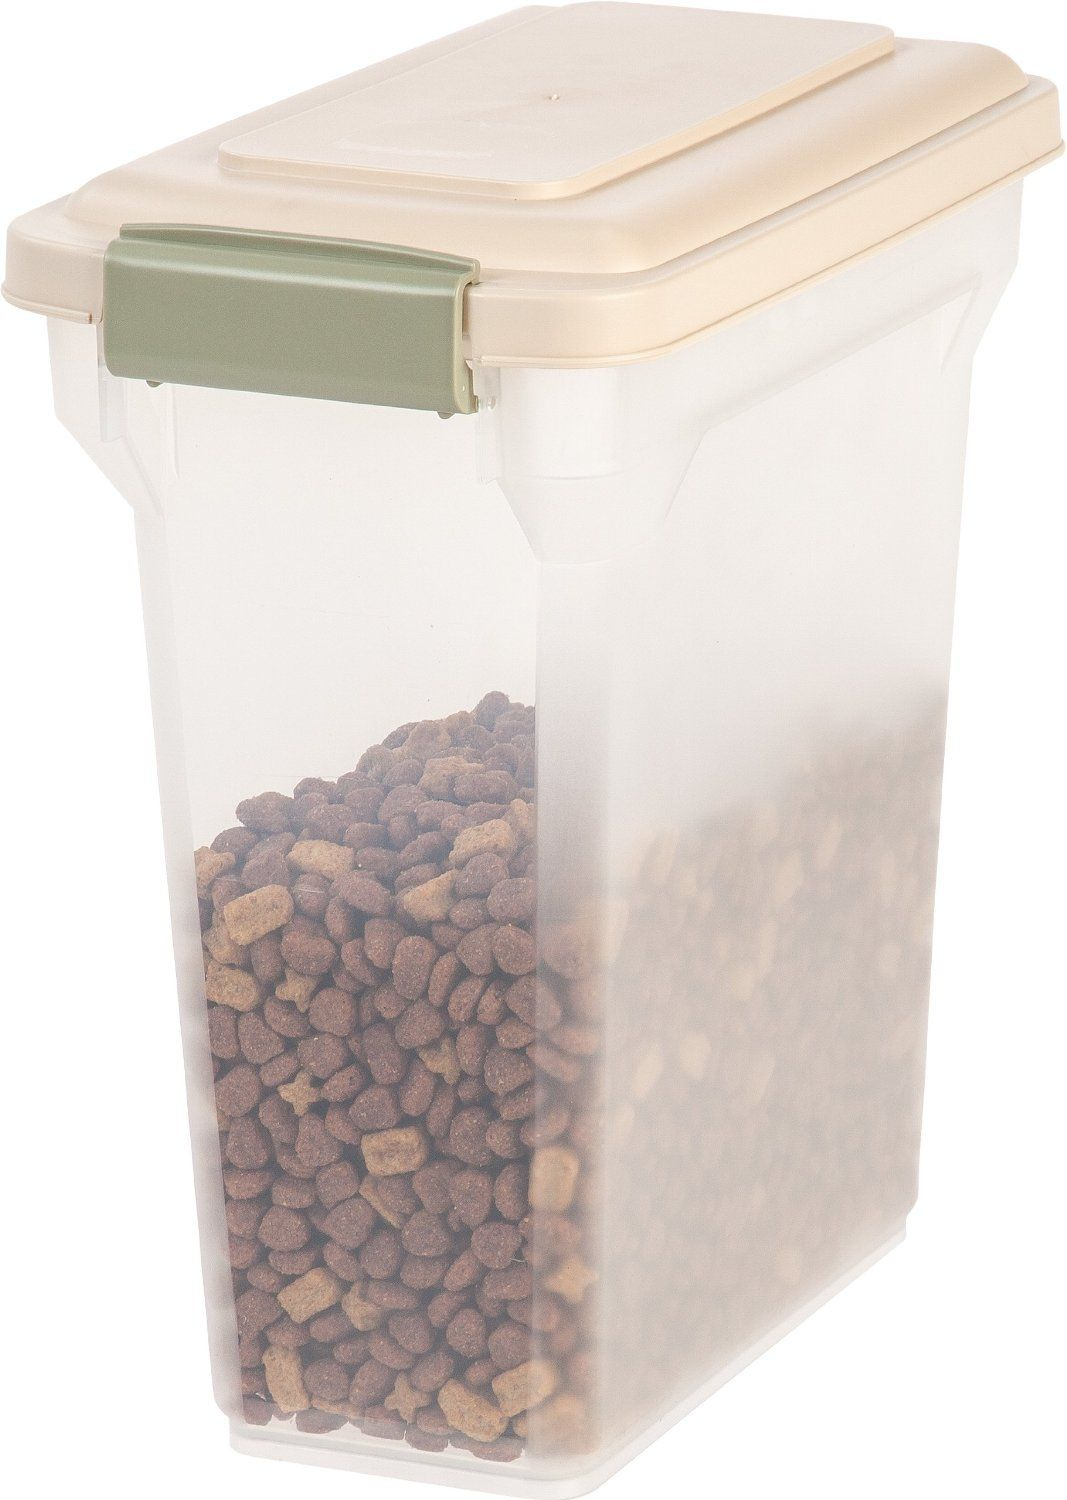 Pin By Farmer S Market Online On Pet Supplies Pet Food Container